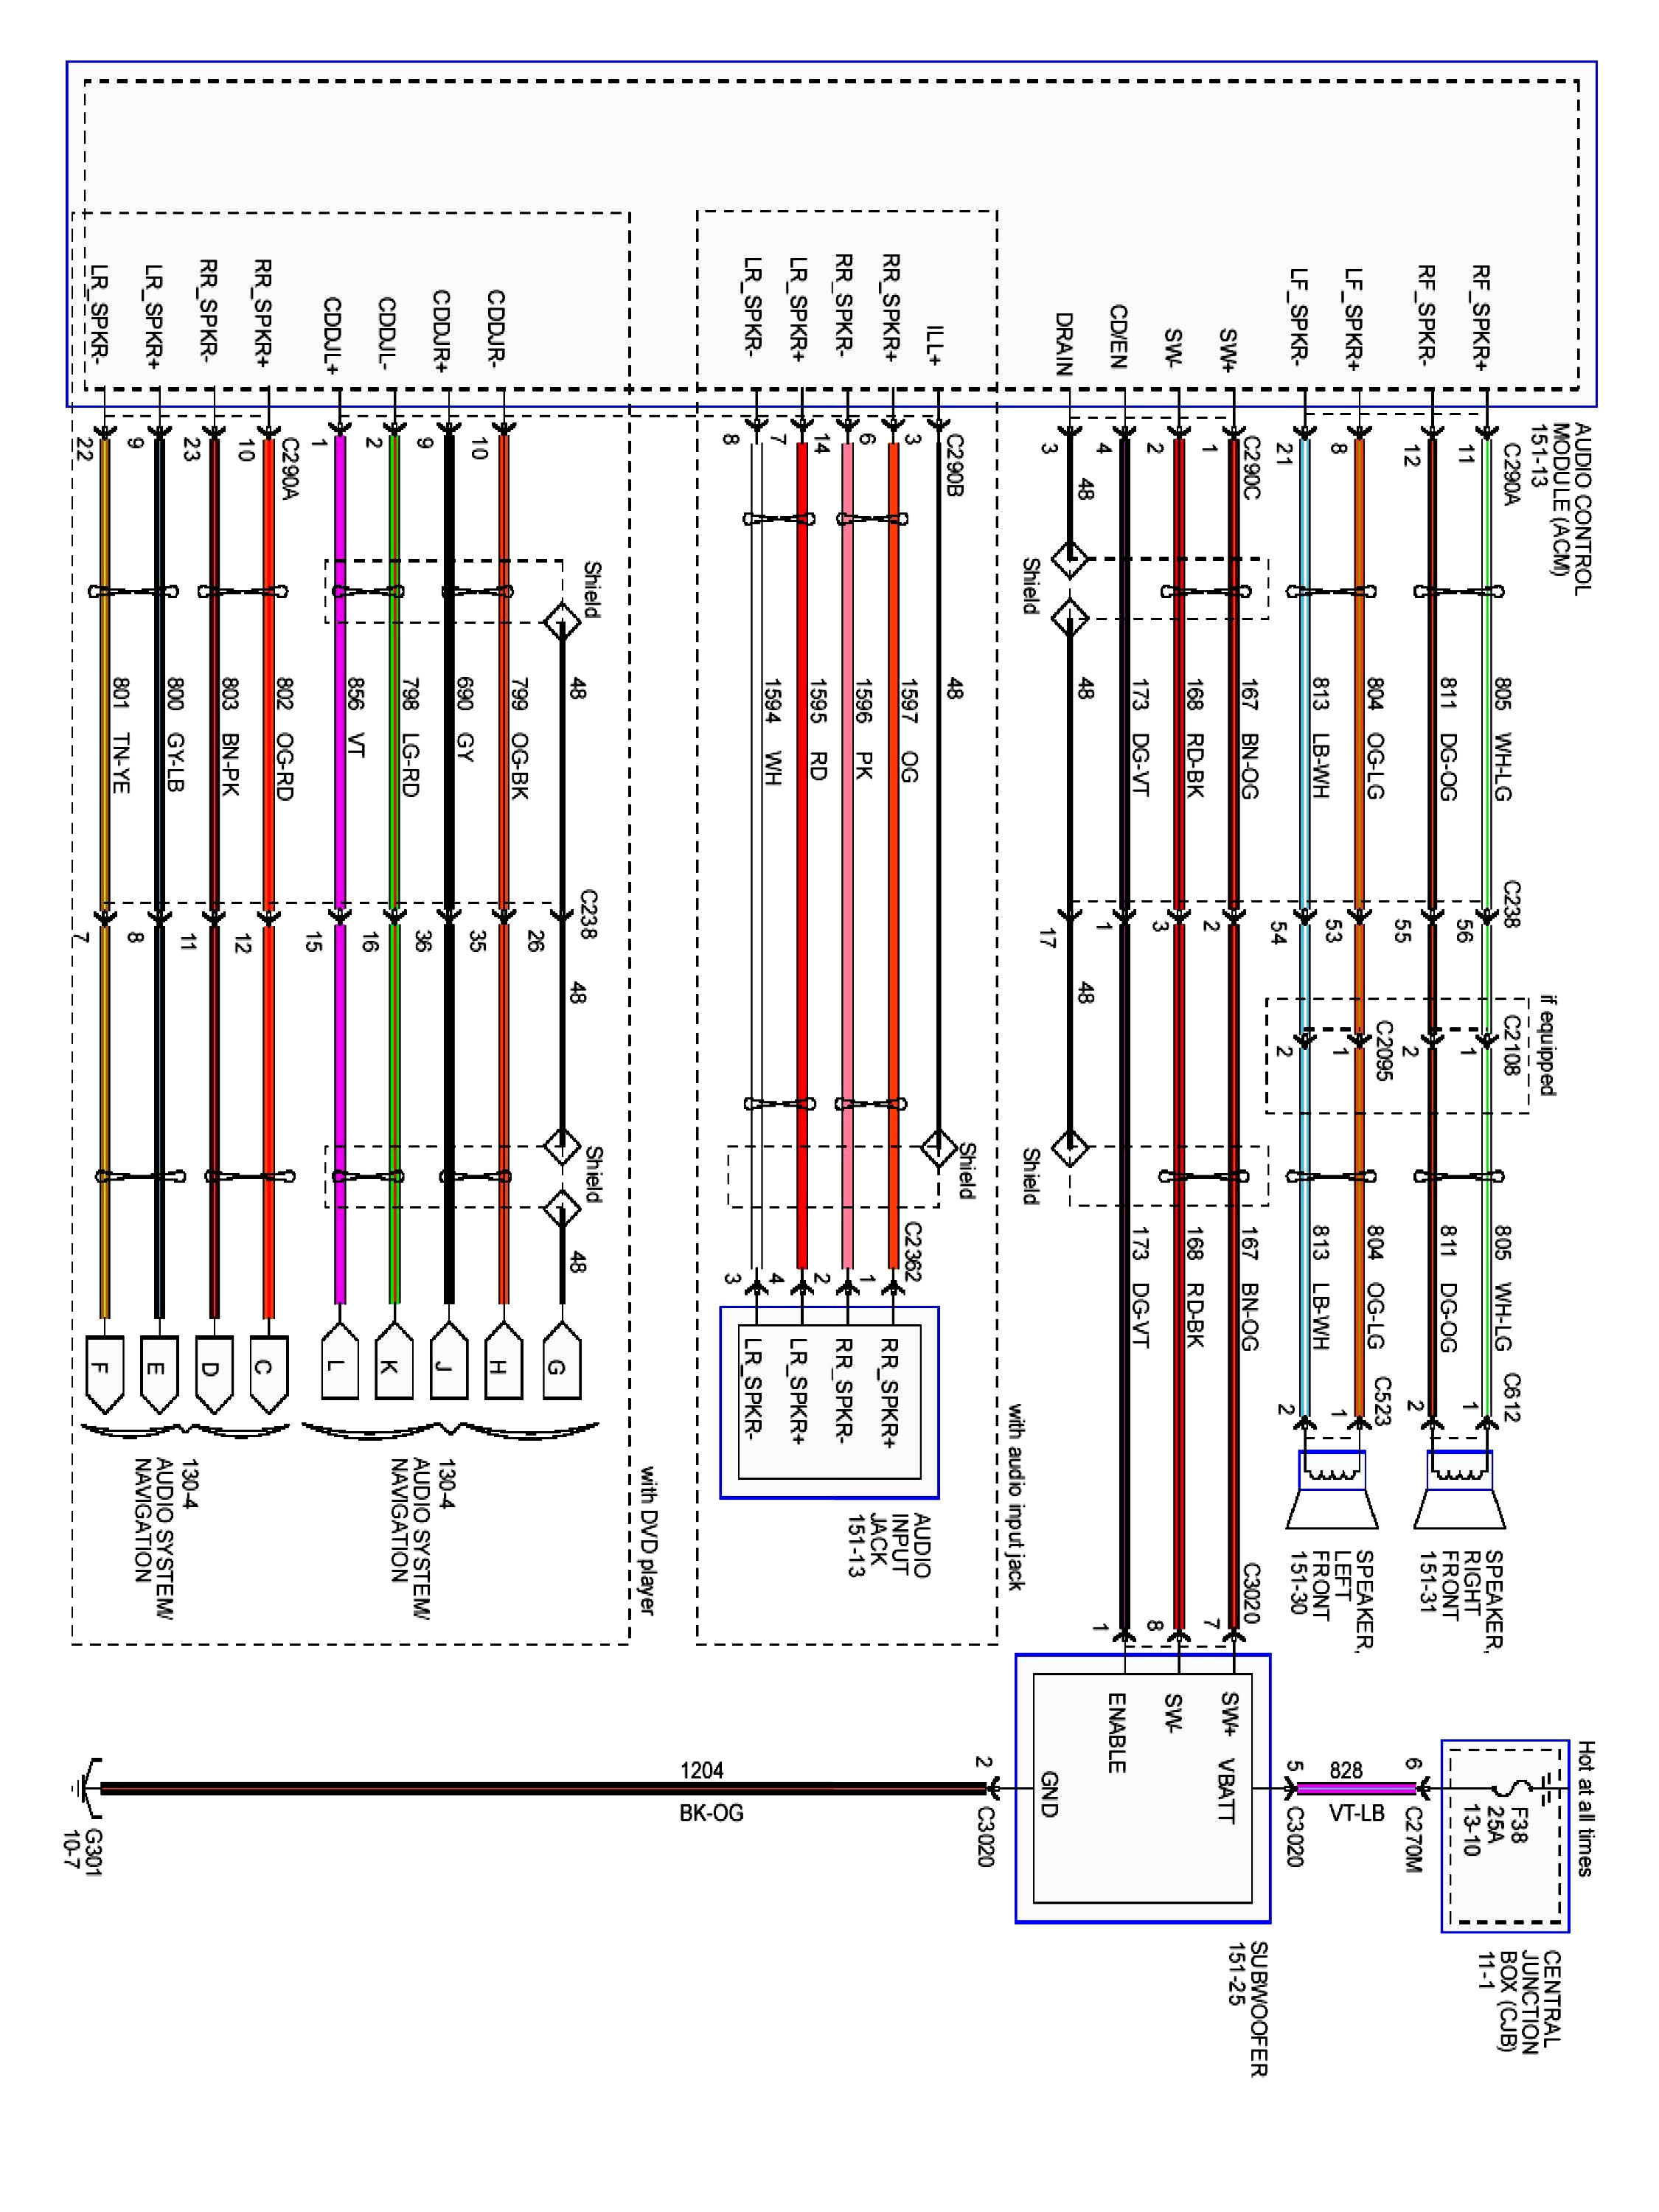 2003 Dodge Ram 3500 Trailer Wiring Diagram Best Of 2003 F350 Trailer - Trailer Wiring Diagram Dodge Ram